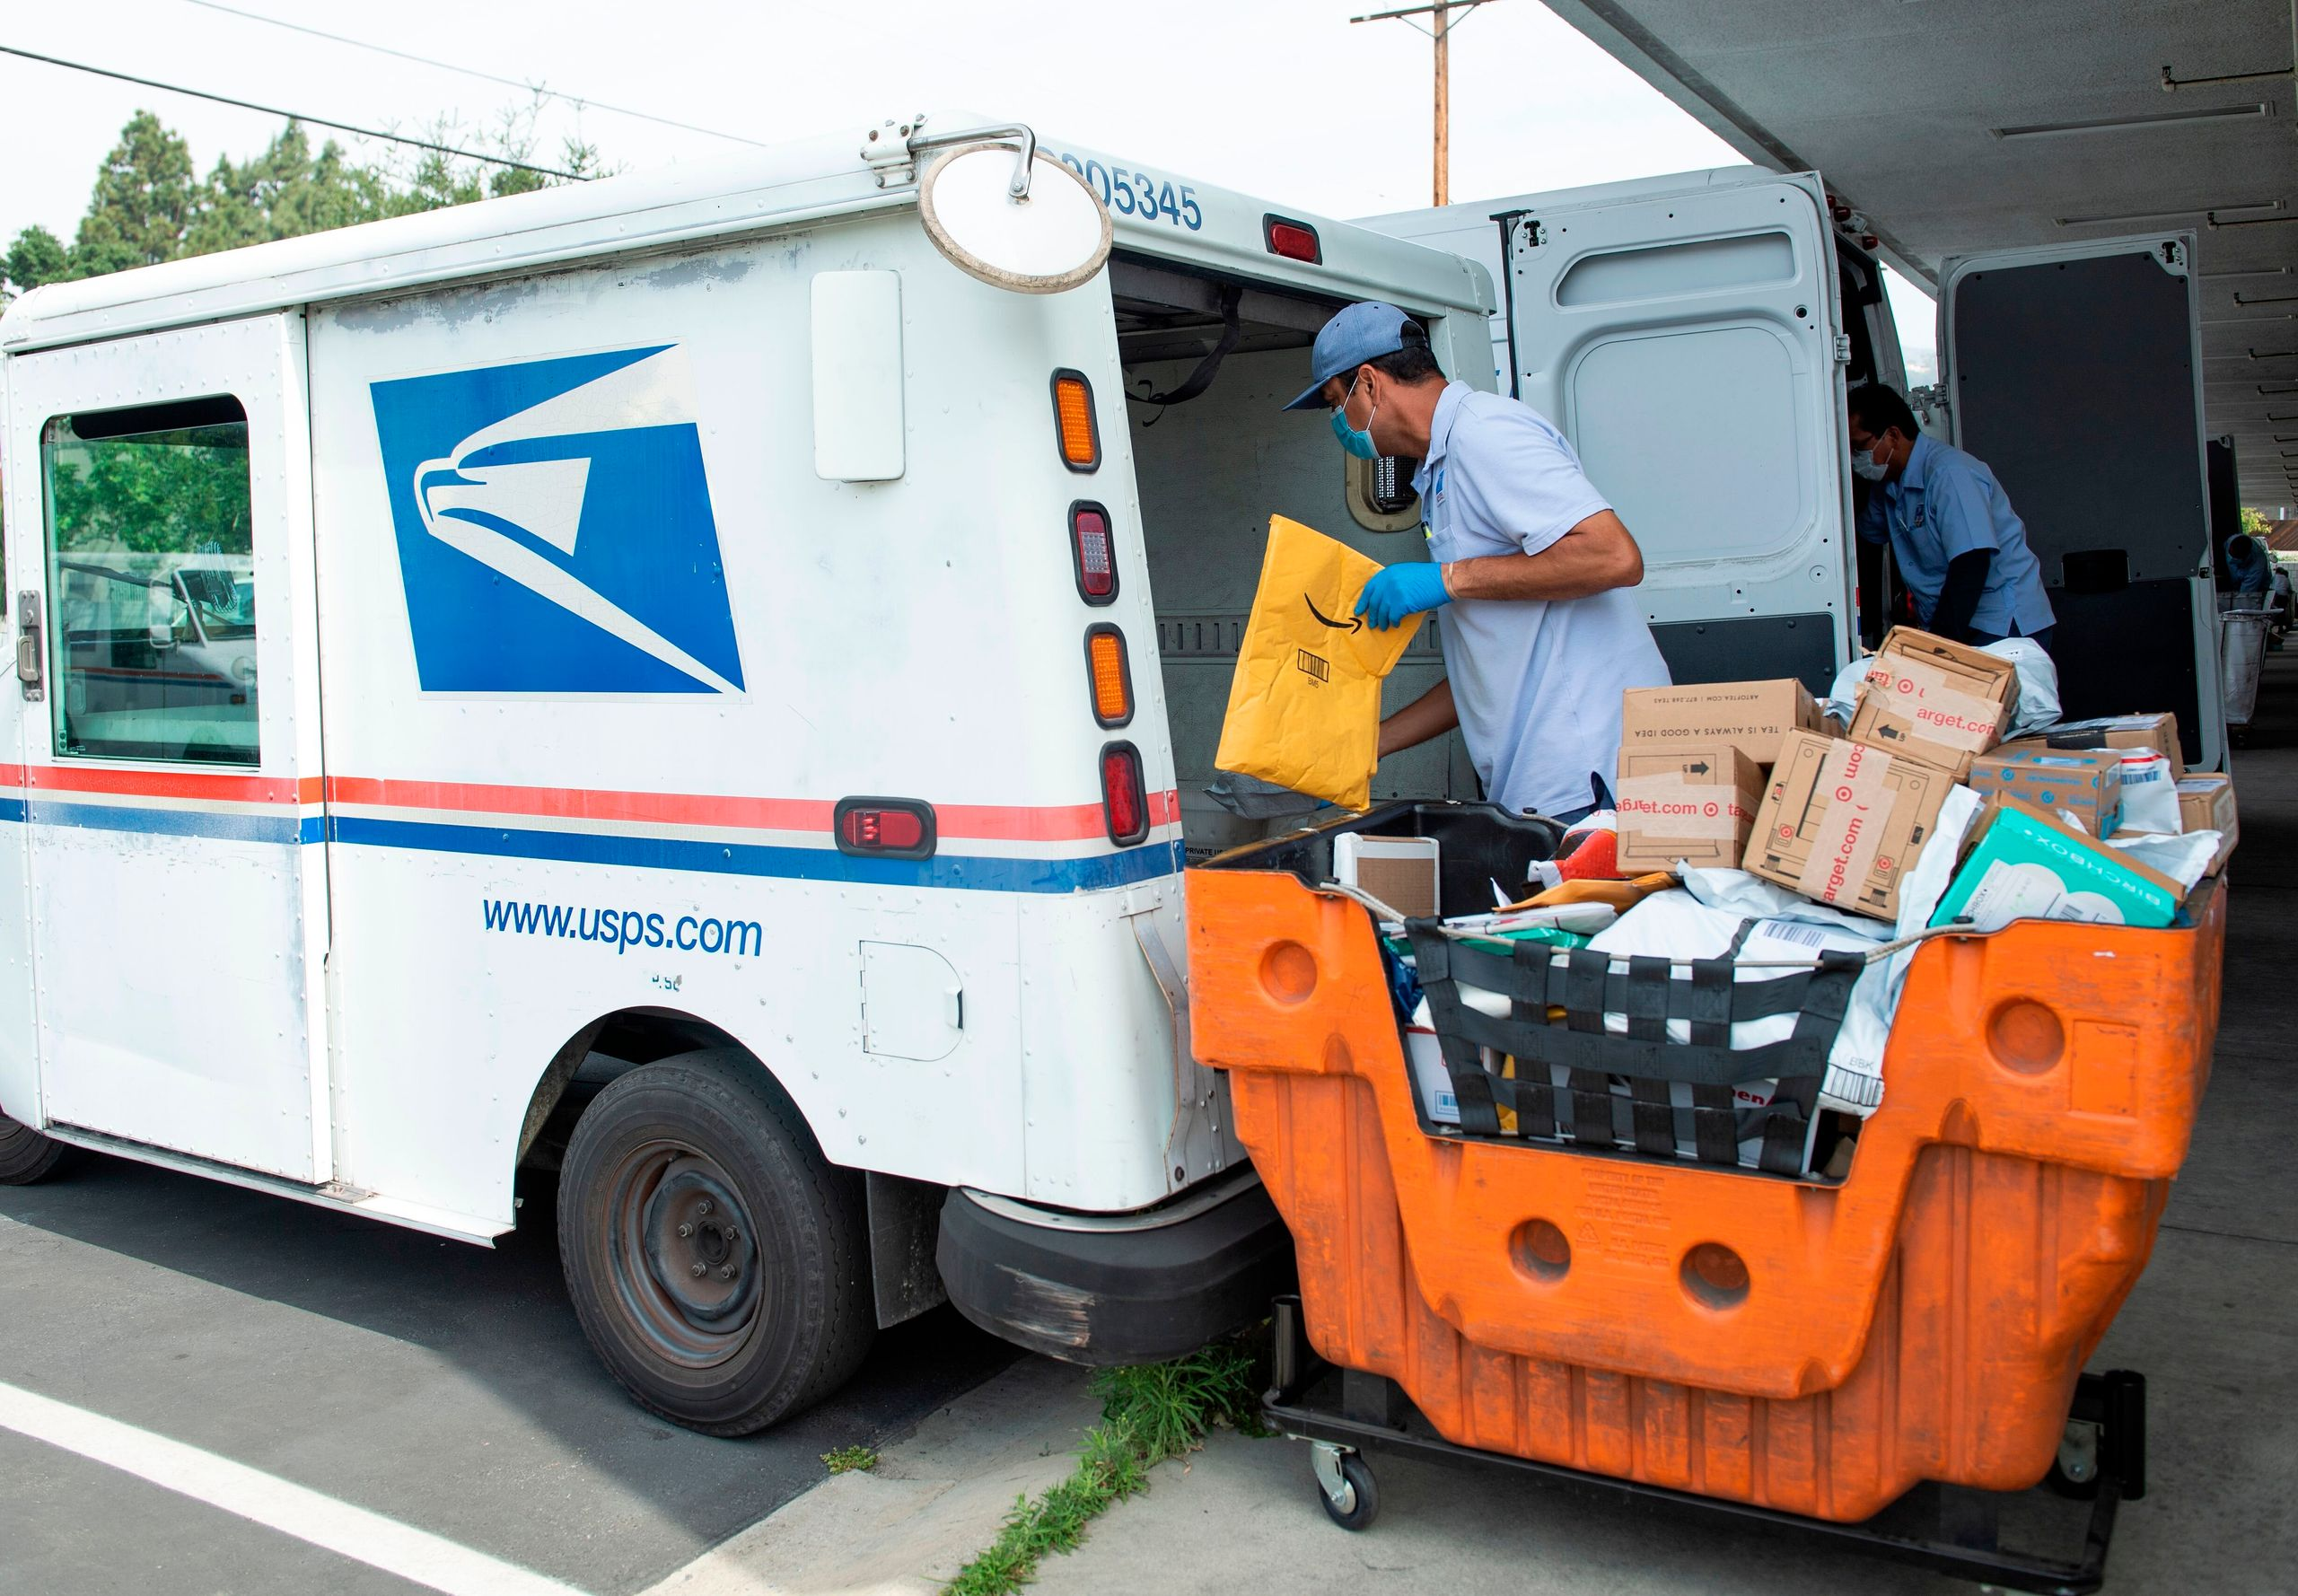 Mail carrier Oscar Osorio delivers mail and packages in the Los Feliz community of Los Angeles on April 29.